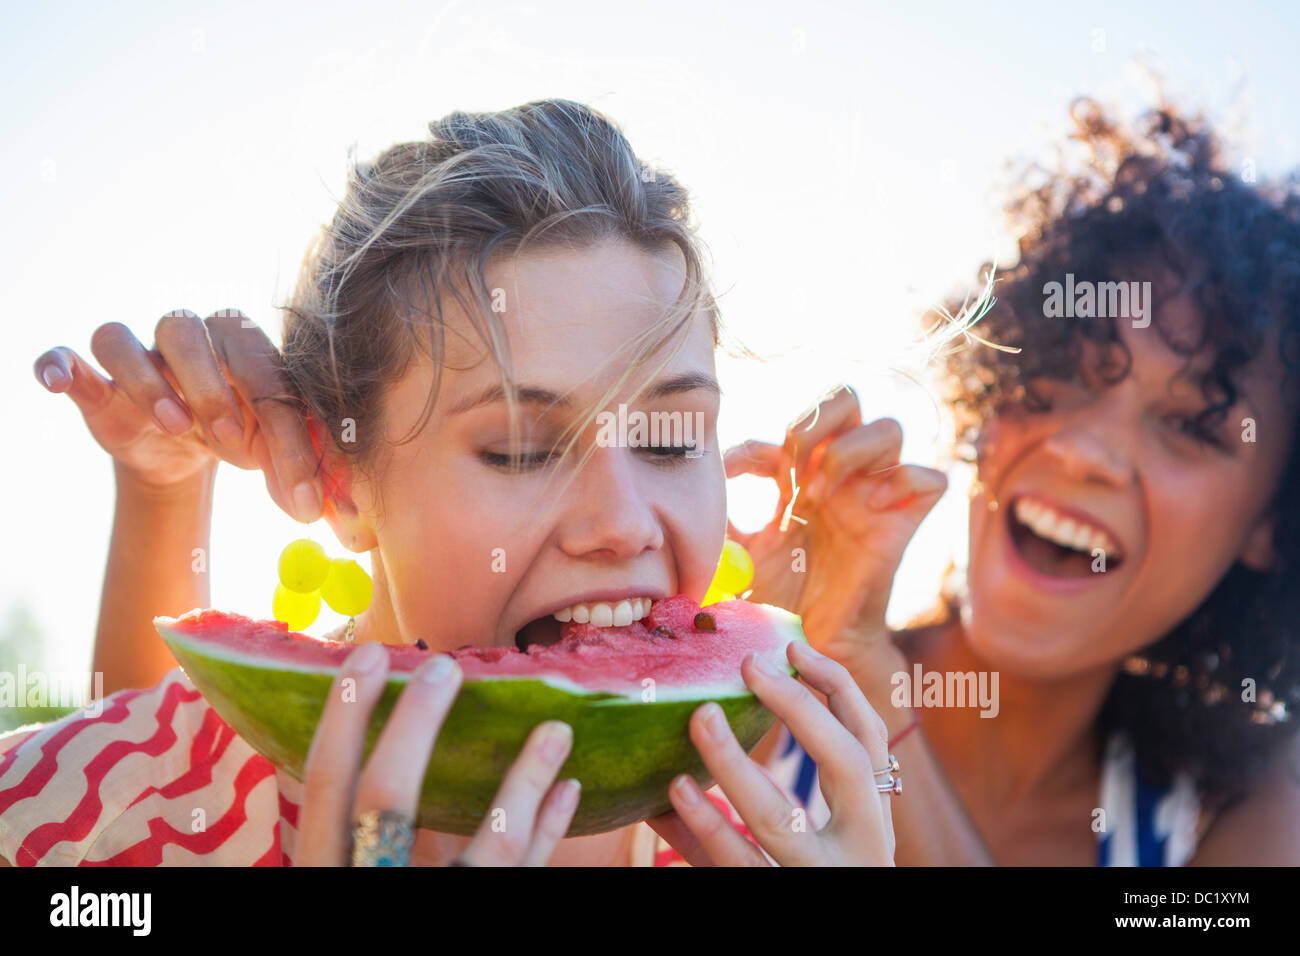 Young woman eating watermelon as friend pulls her ears - Stock Image